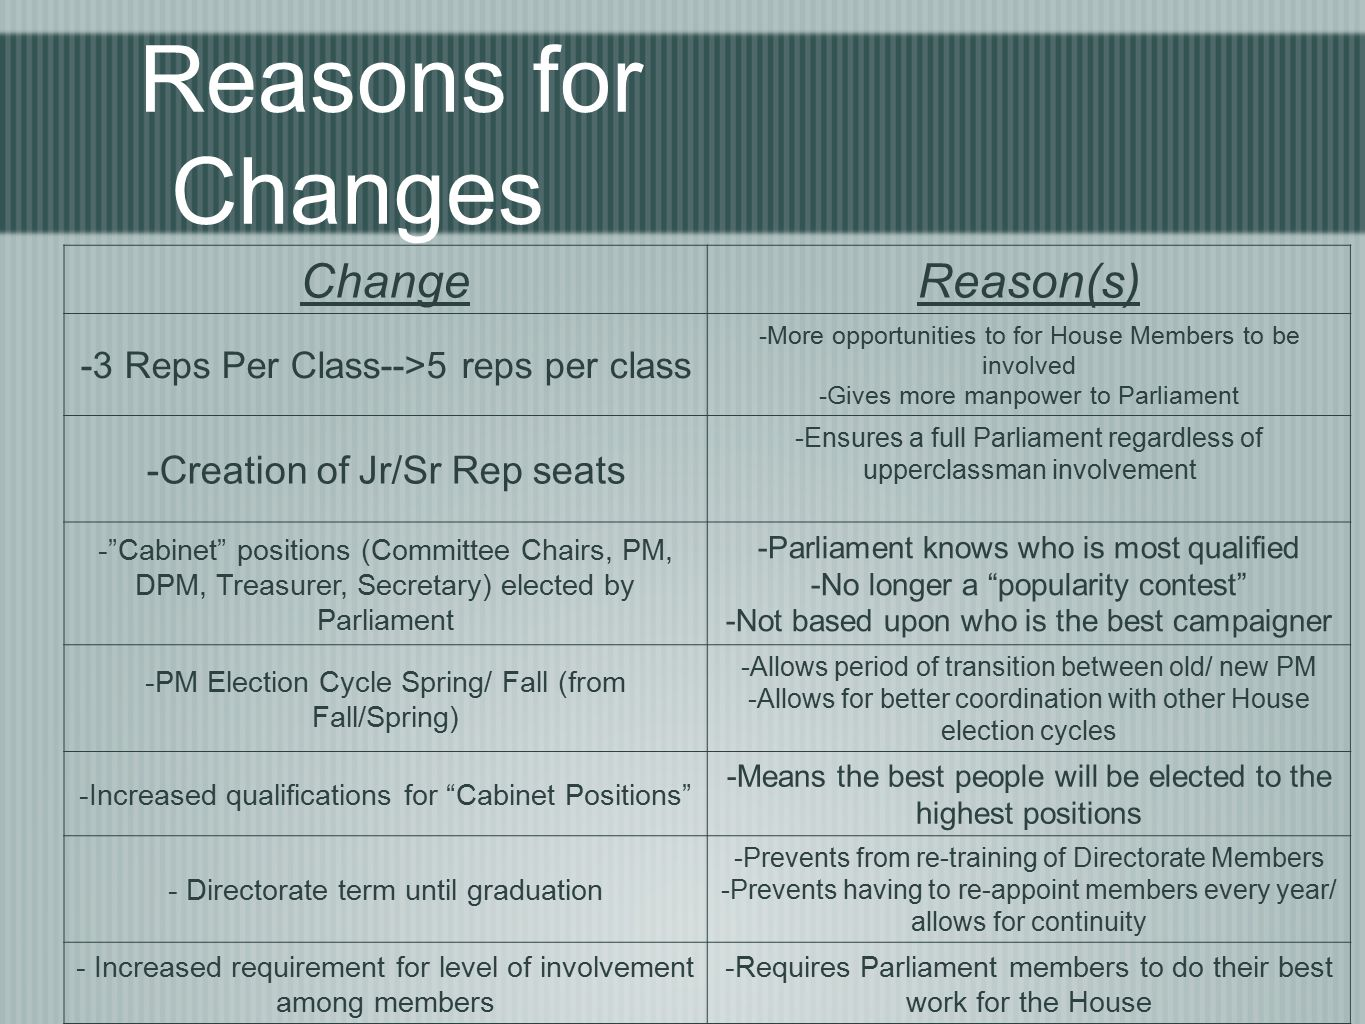 Reasons for Changes Elect ChangeReason(s) -3 Reps Per Class-->5 reps per class -More opportunities to for House Members to be involved -Gives more manpower to Parliament -Creation of Jr/Sr Rep seats -Ensures a full Parliament regardless of upperclassman involvement - Cabinet positions (Committee Chairs, PM, DPM, Treasurer, Secretary) elected by Parliament -Parliament knows who is most qualified -No longer a popularity contest -Not based upon who is the best campaigner -PM Election Cycle Spring/ Fall (from Fall/Spring) -Allows period of transition between old/ new PM -Allows for better coordination with other House election cycles -Increased qualifications for Cabinet Positions -Means the best people will be elected to the highest positions - Directorate term until graduation -Prevents from re-training of Directorate Members -Prevents having to re-appoint members every year/ allows for continuity - Increased requirement for level of involvement among members -Requires Parliament members to do their best work for the House -Recognition of Ware in the World/ Sustainability/ Other Subcommittees -Rewards creativity/ initiative taken by House Members -House Court Responsible for Elections -Impartial/ Responsible House members prevent election disputes